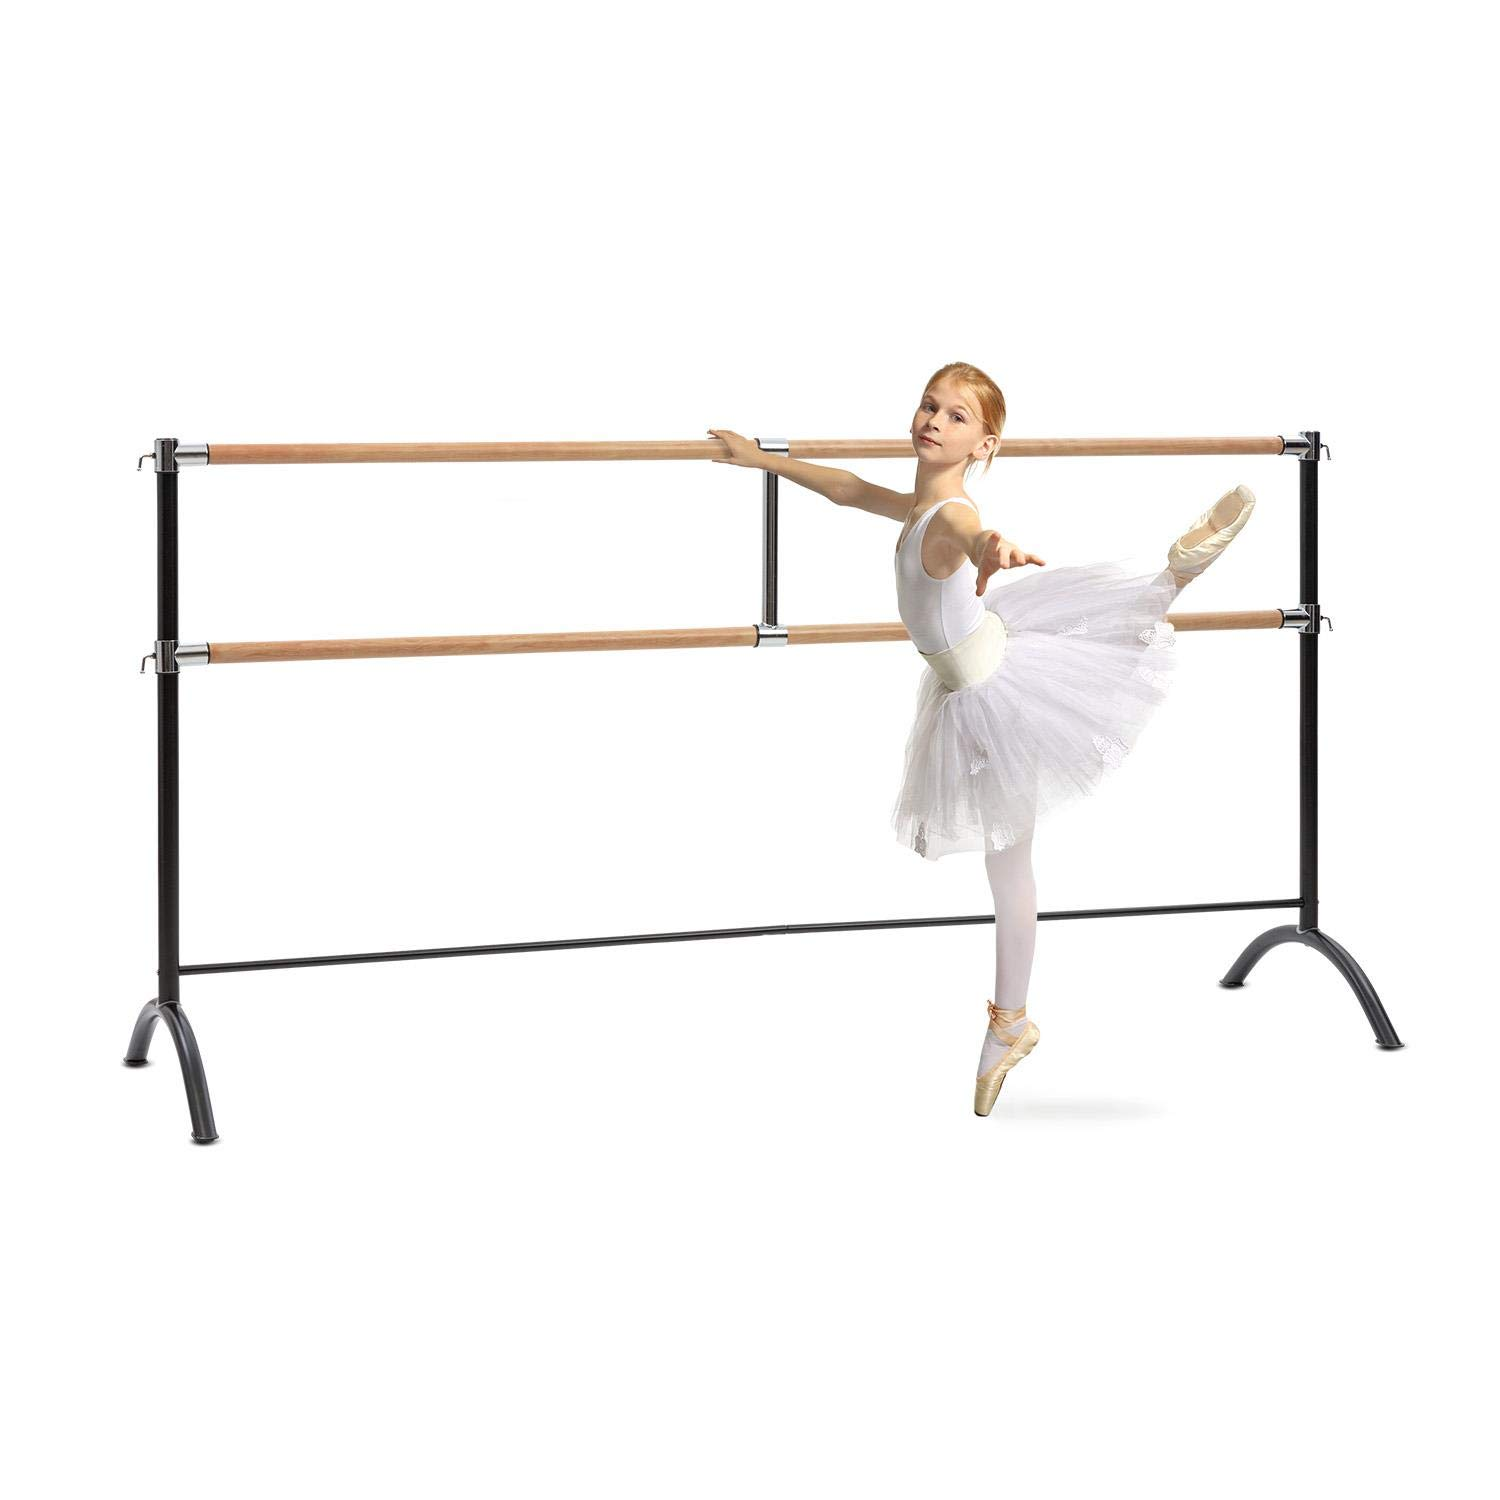 Klarfit Barre Marie • Double Ballet Bar • Free-standing • 220 x 113 cm • 2 x 38 mm Ø • Powder-coated Steel Tubes with Wooden Look • Suitable for Numerous Stretch and Movement Exercises • Black